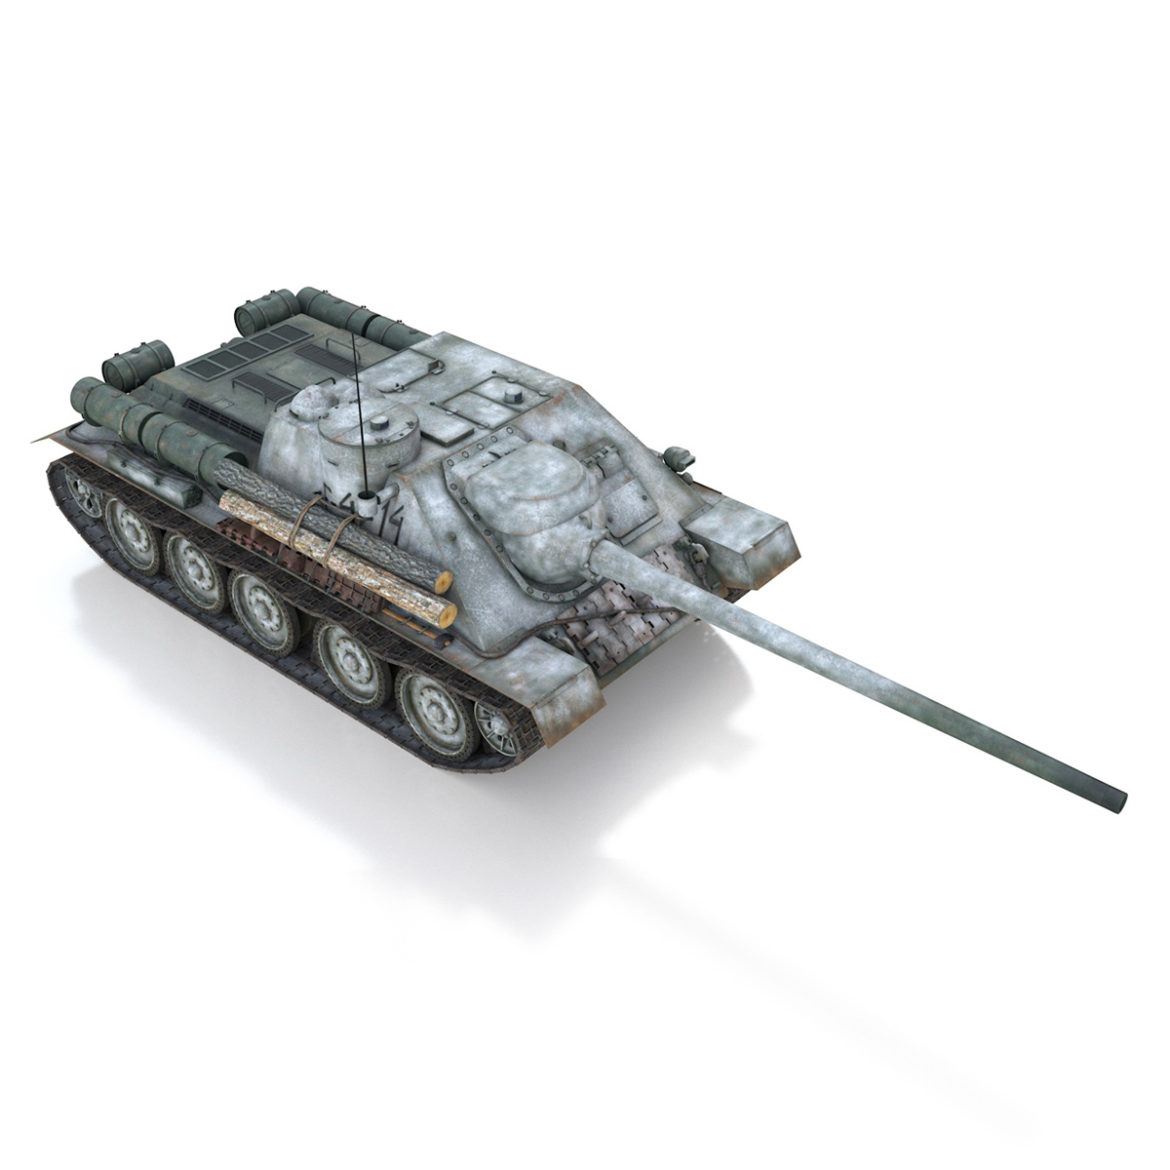 su-100 – e414 – soviet tank destroyer 3d model 3ds c4d lwo obj 314702